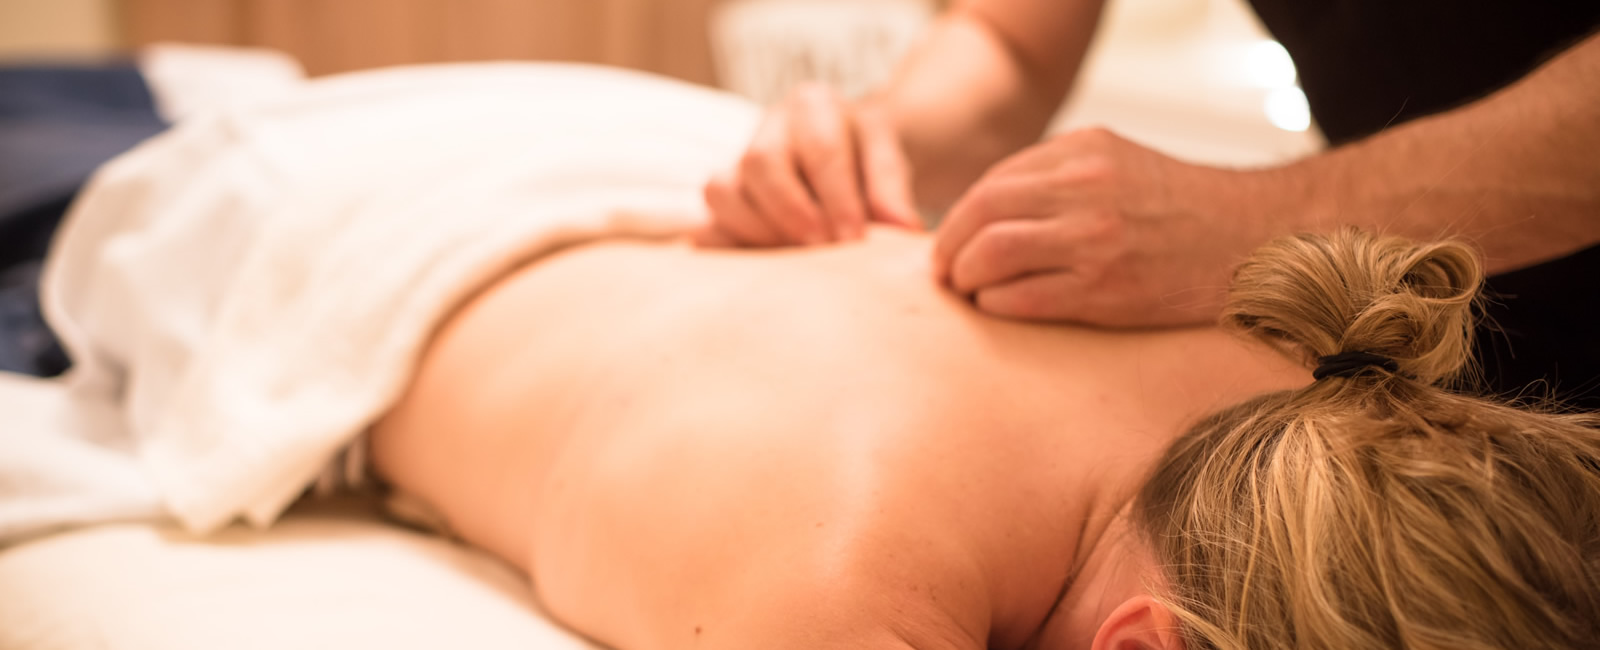 Massothérapie Vitalie - Massage Therapist in Ahuntsic Montreal